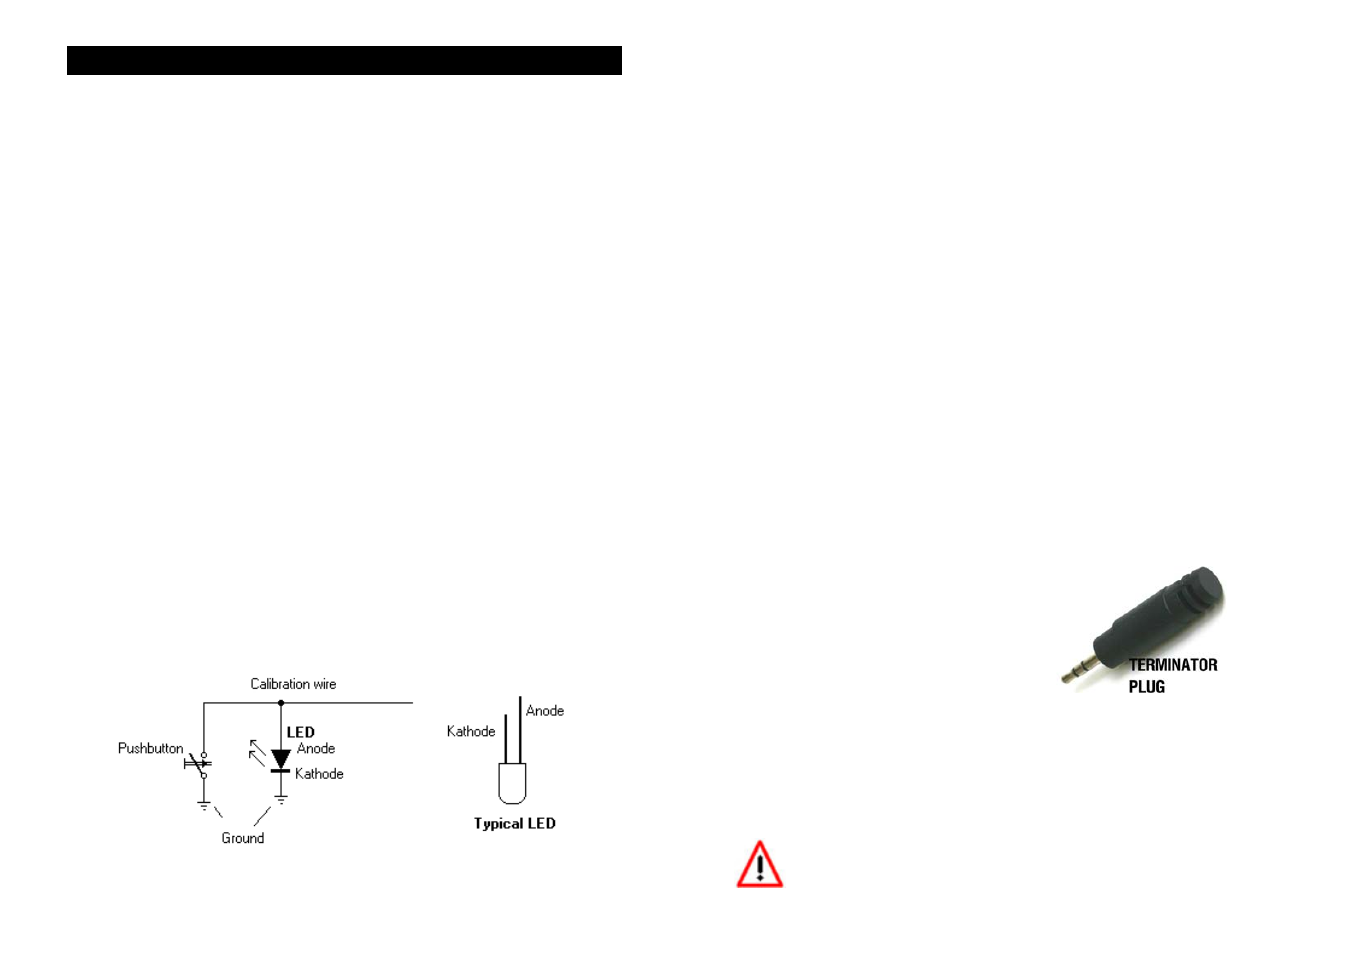 Lc-1 - inside (rev e), Lc-1 (lambda cable), Quick start guide | Innovate  Motorsports LC-1 Quick Start Guide User Manual | Page 2 / 2